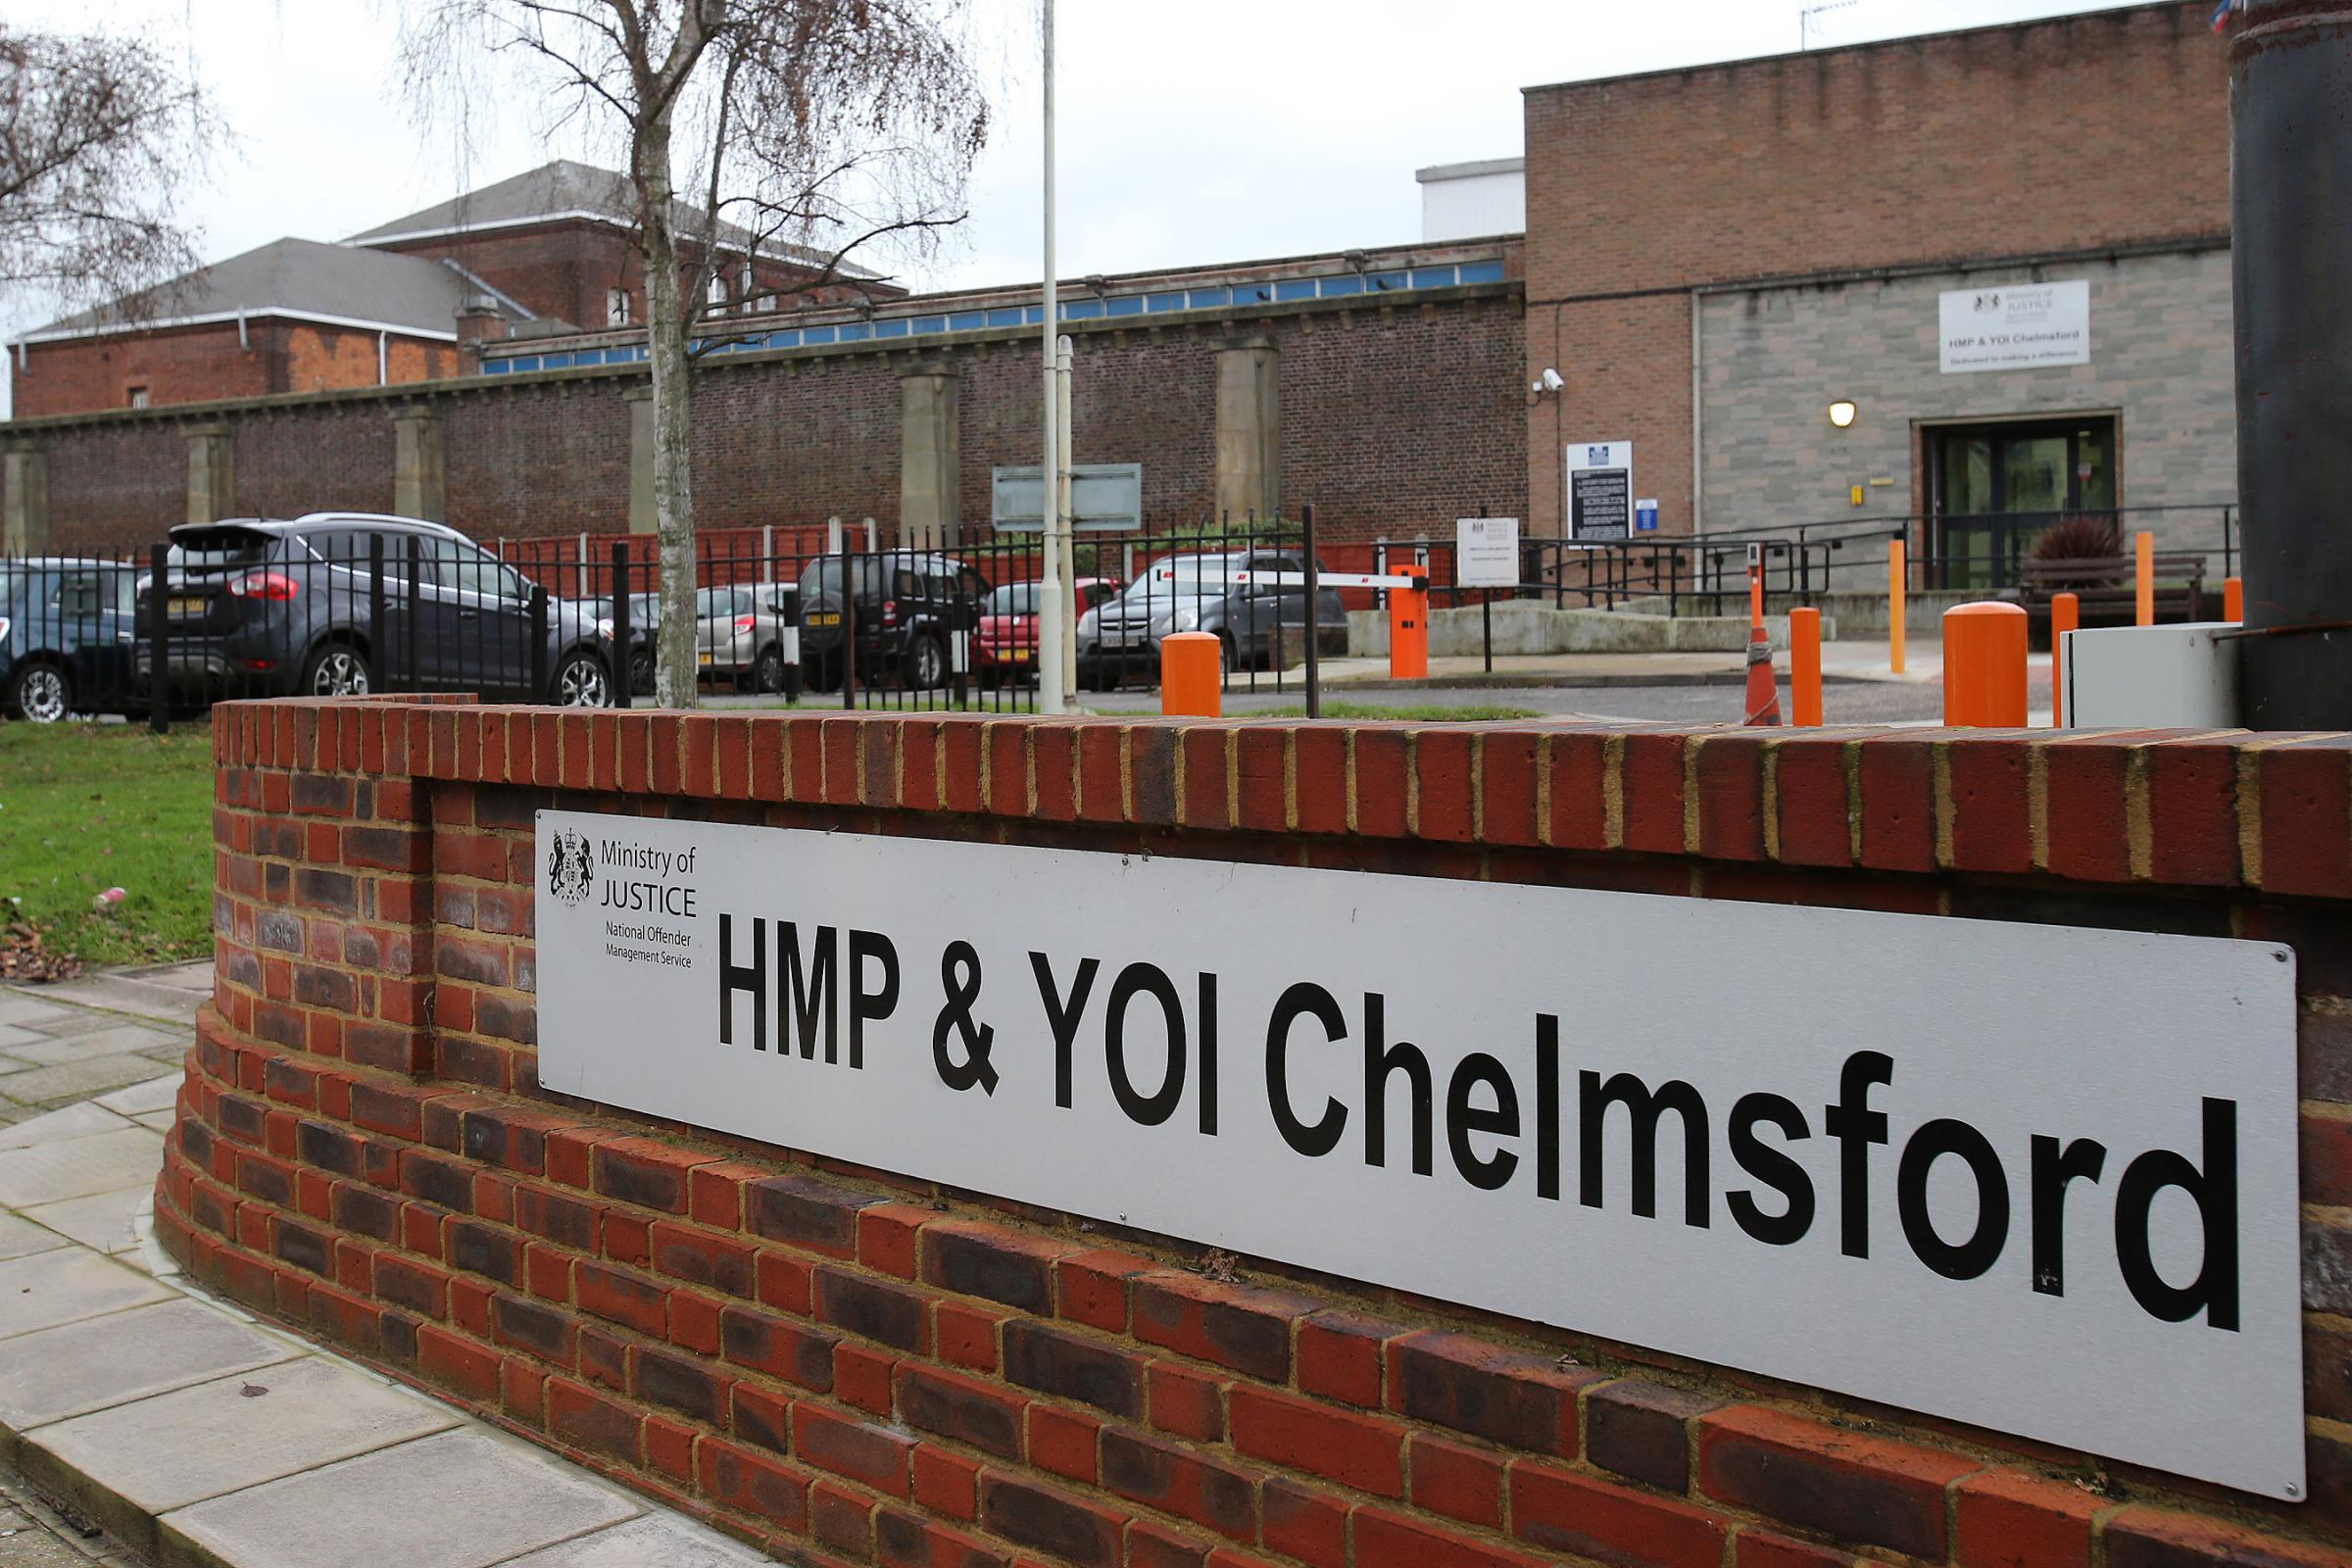 Space issues causing problems at Chelmsford prison